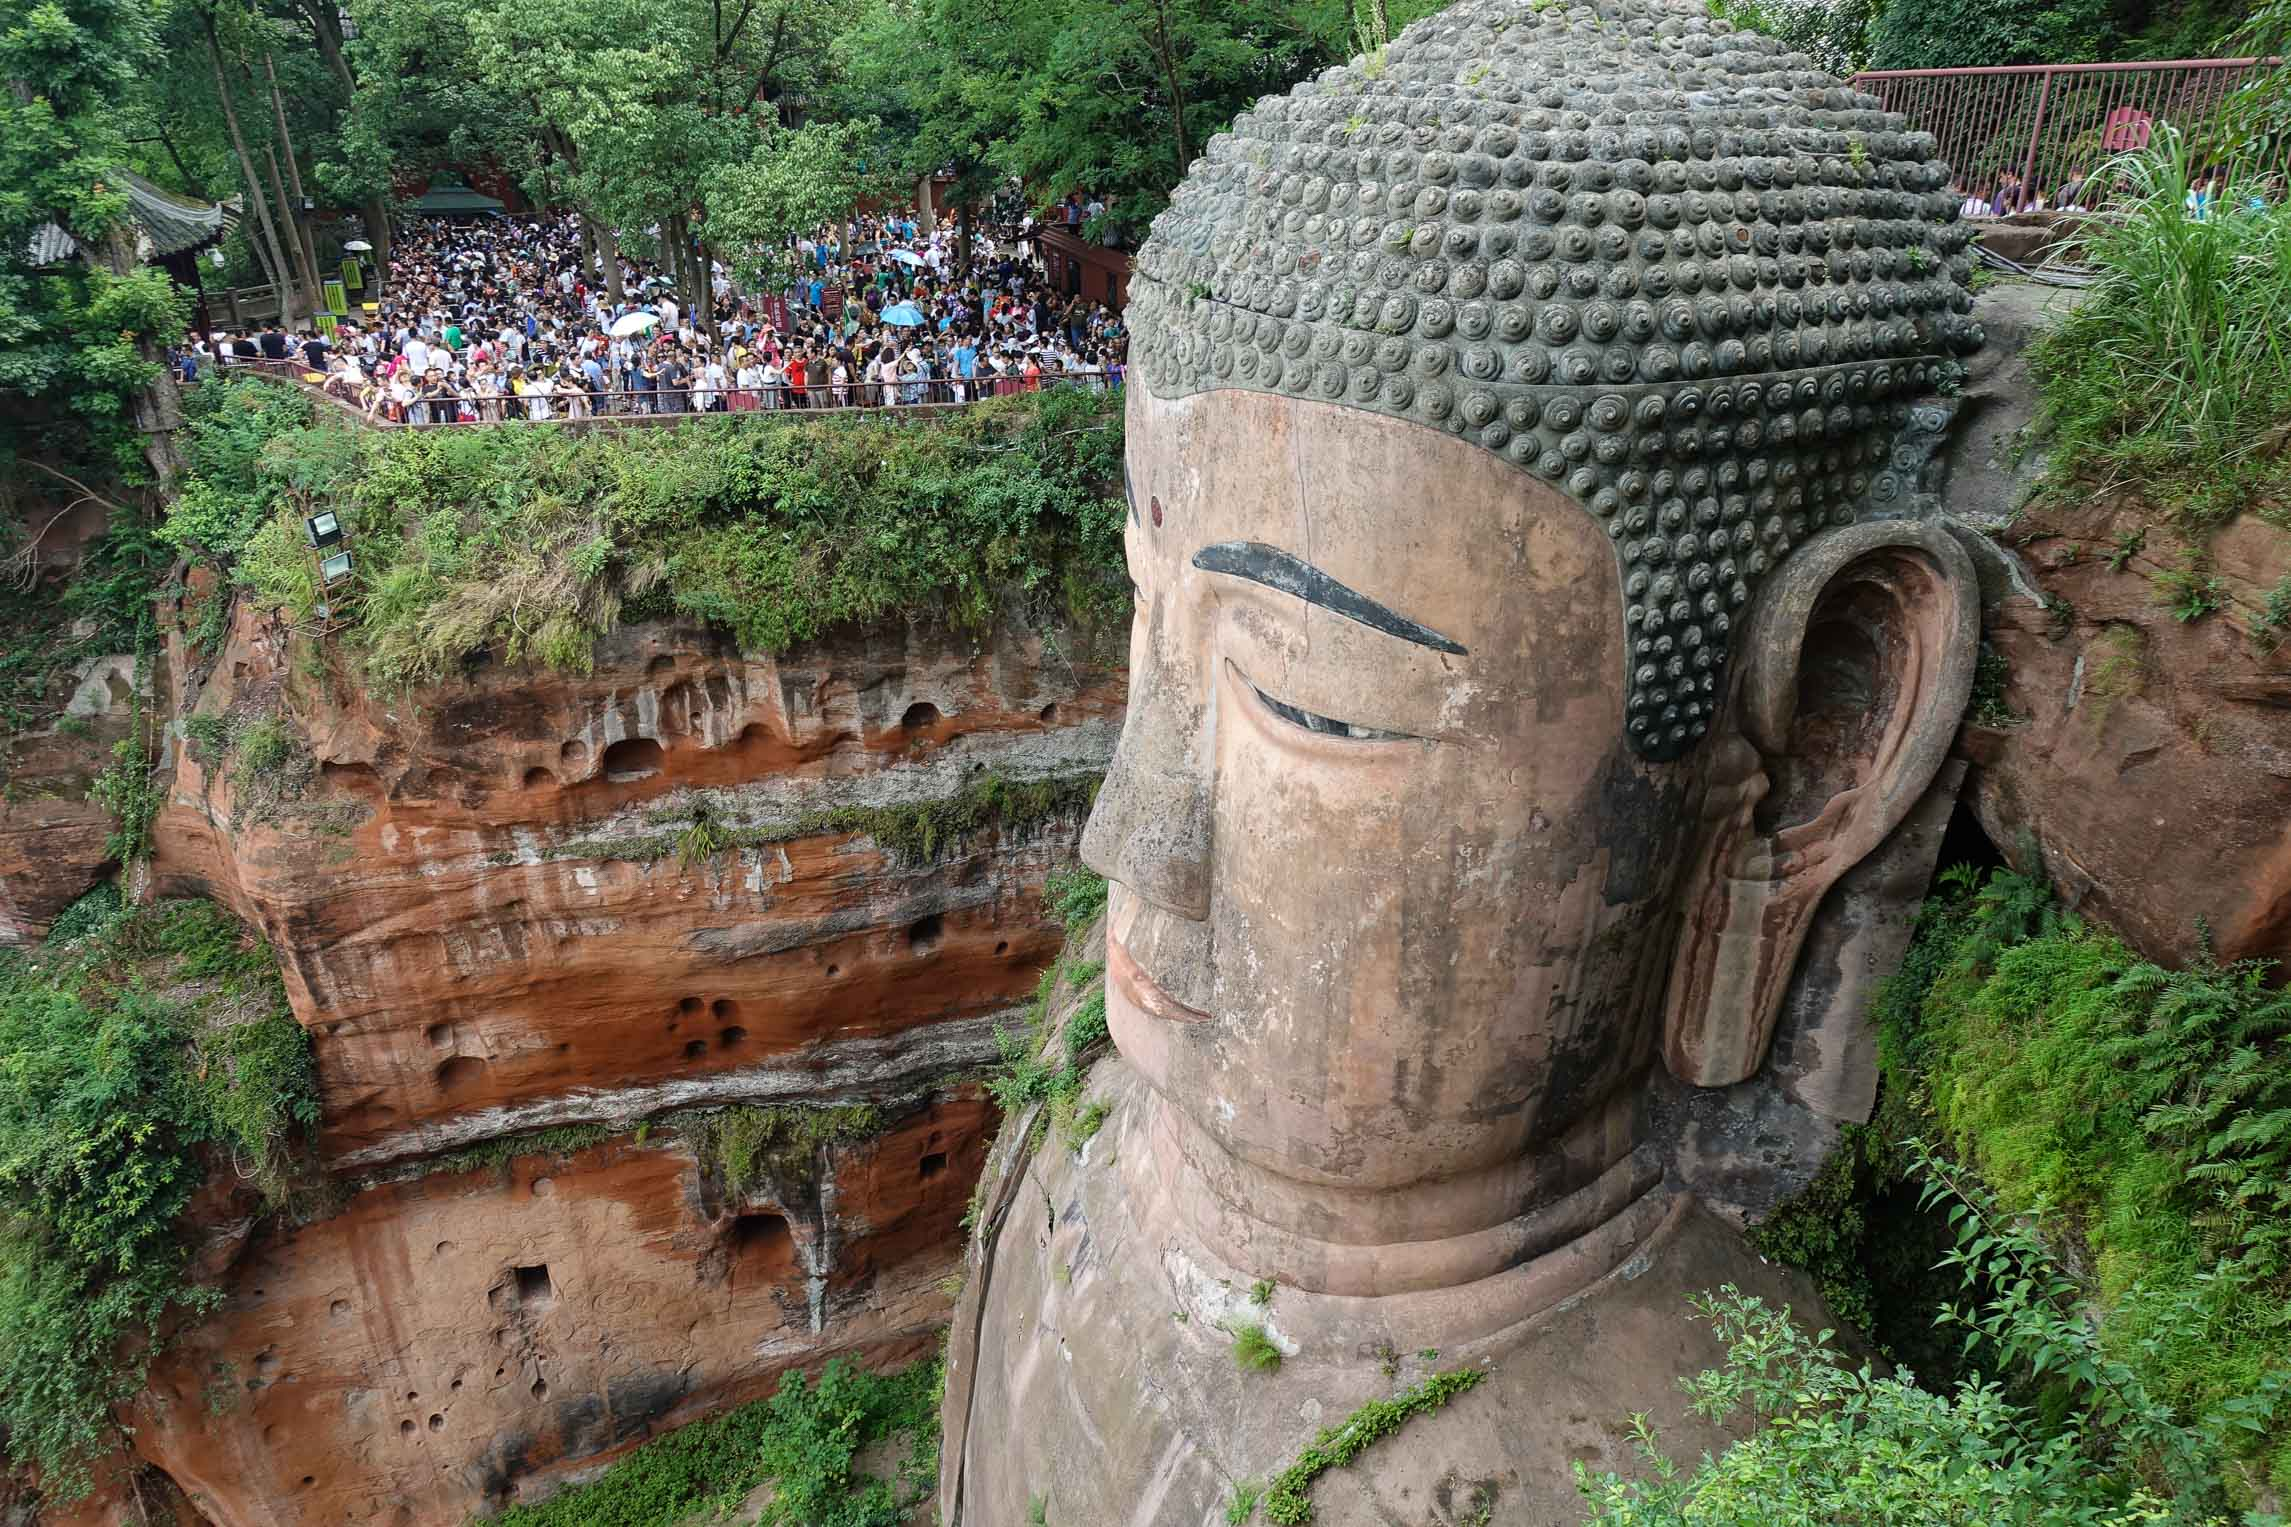 The Buddha and the crowds